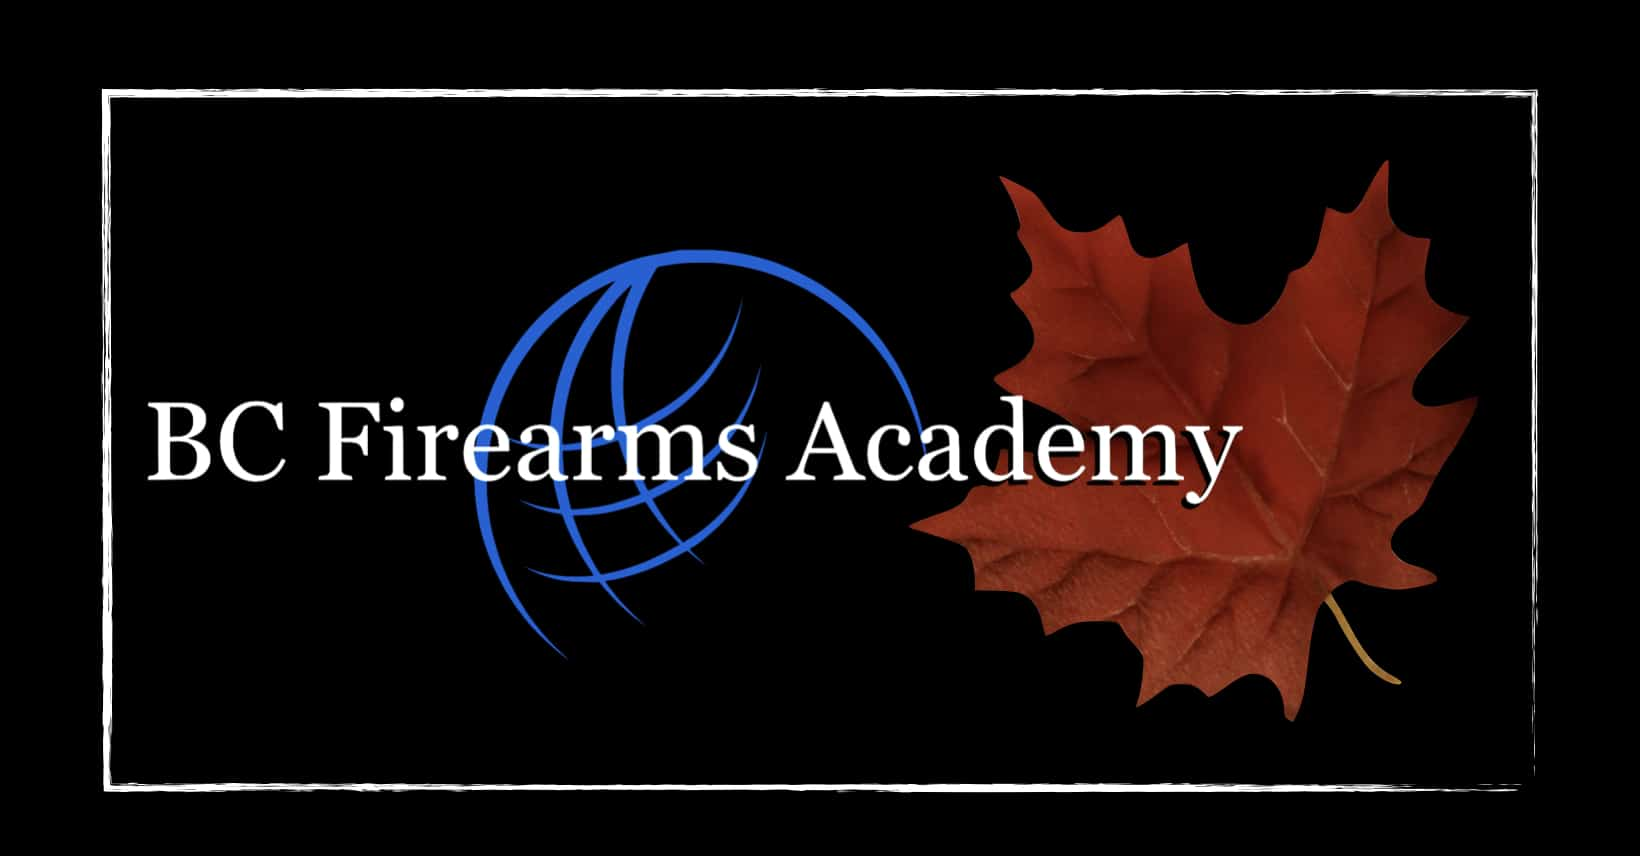 BC Firearms Academy - PAL Course, Firearms Licensing and CORE Hunter Education Training.  How to buy a gun in BC.